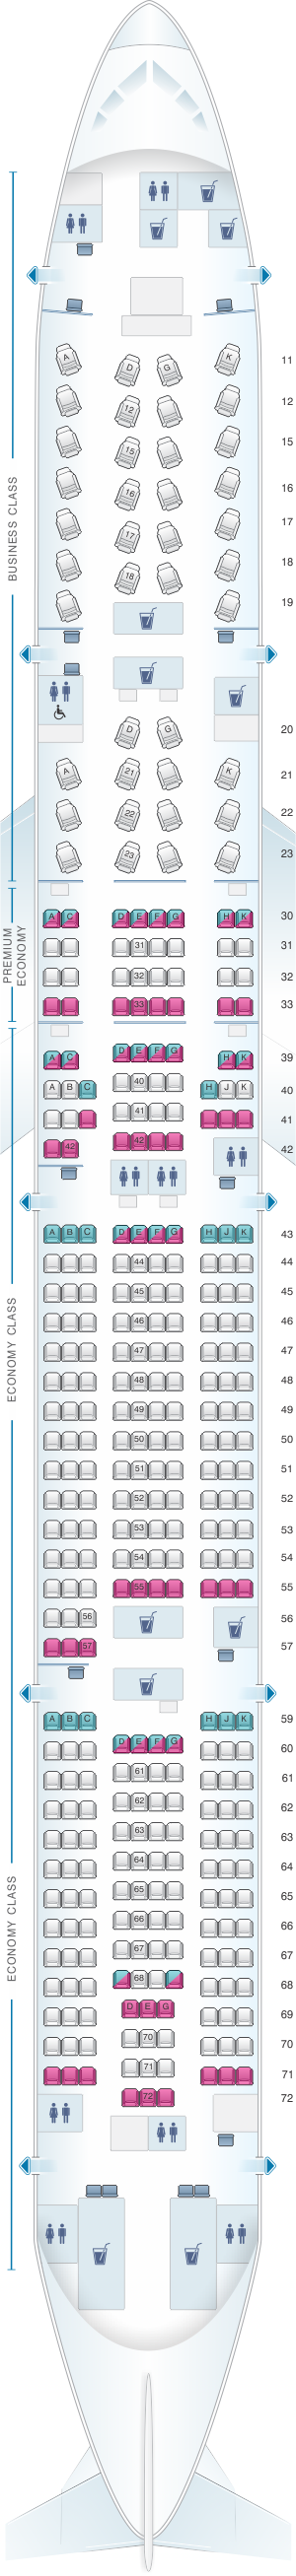 Seat map for Cathay Pacific Airways Boeing B777 300 (77K)